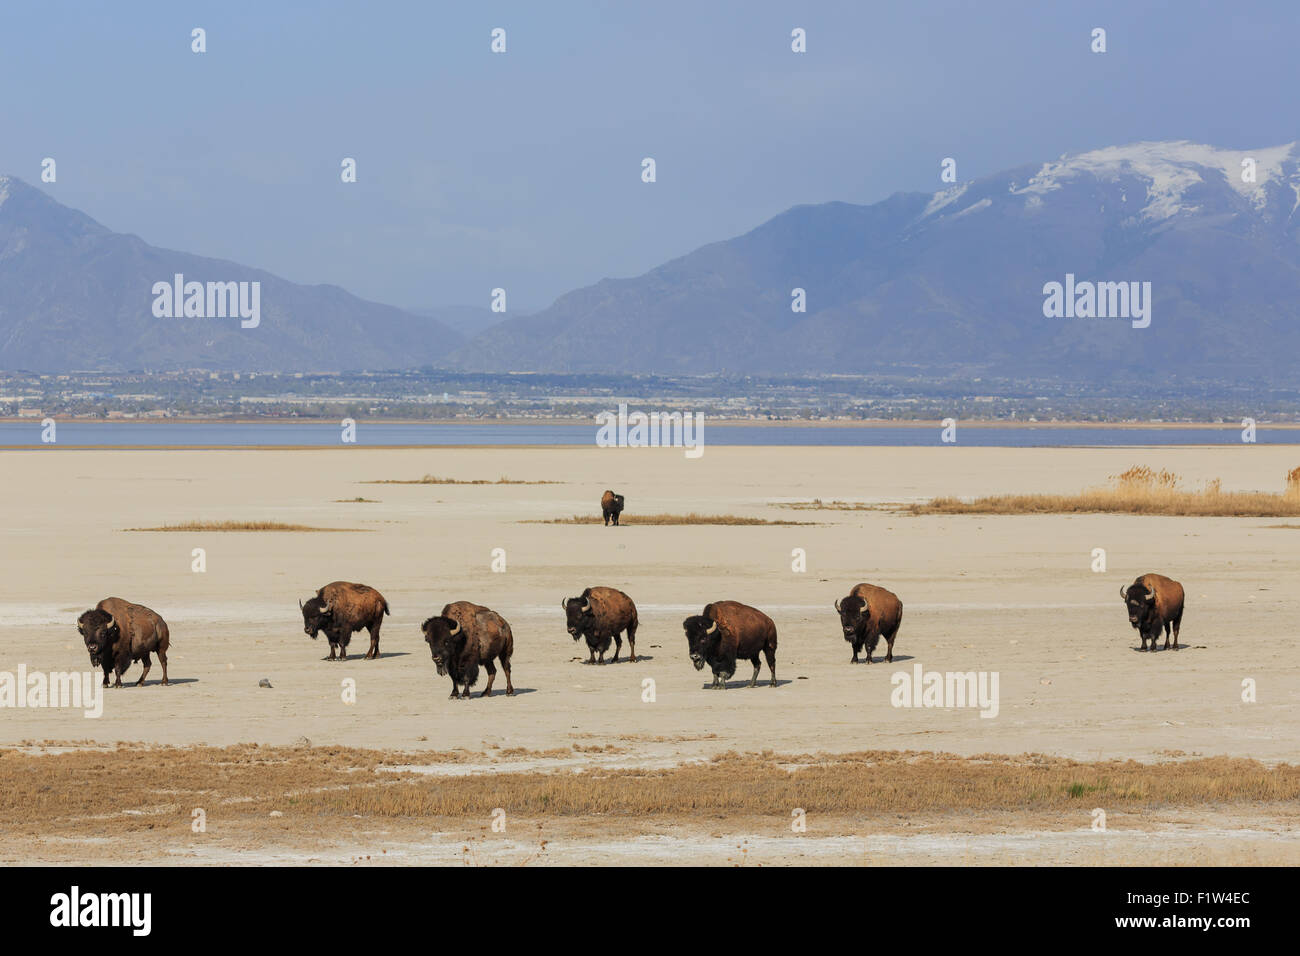 Herd of Buffalo roam the salt flats at the Great Salt Lake with snowcapped mountains in the background - Stock Image